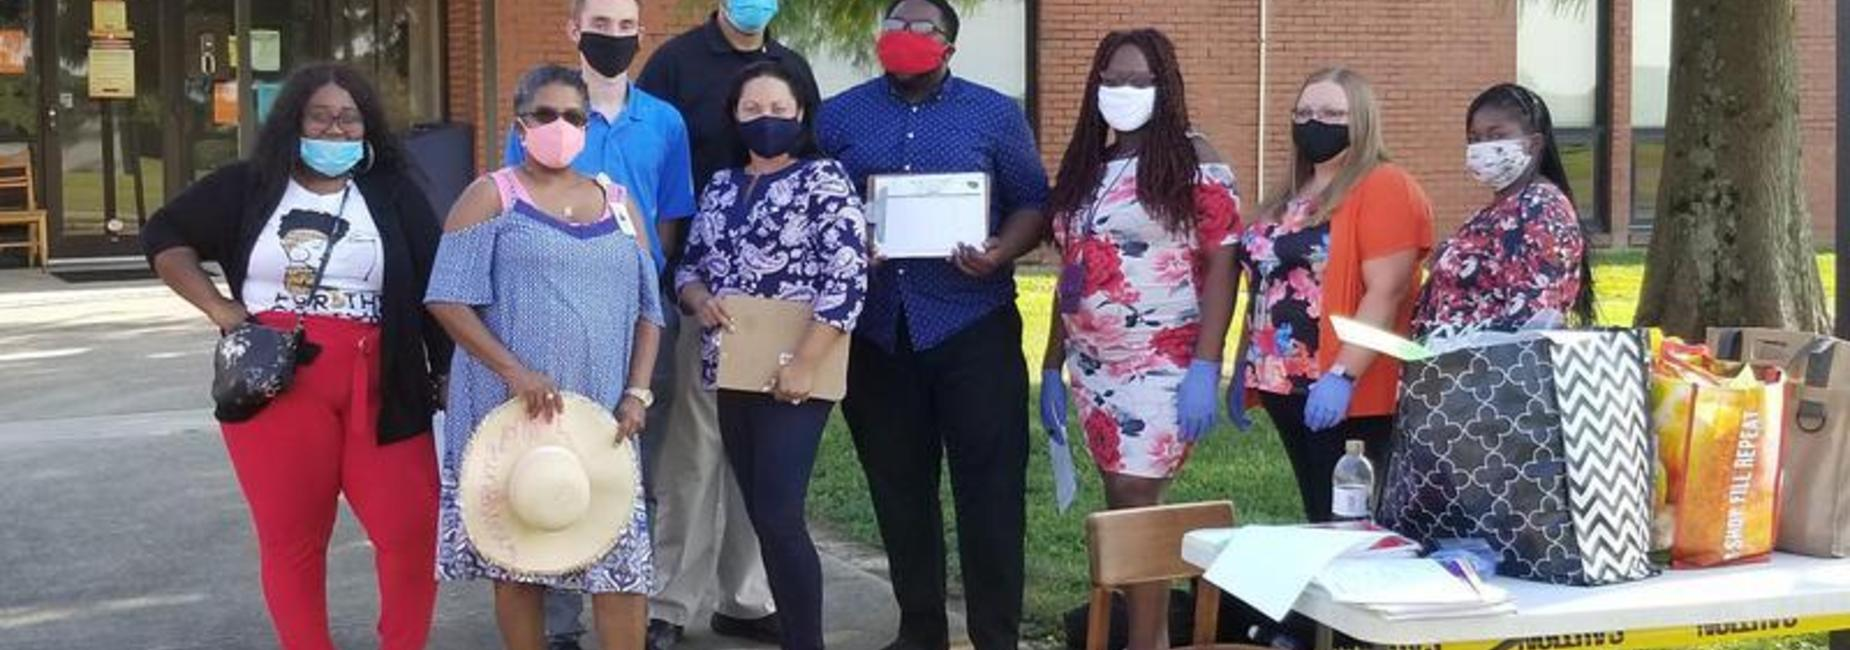 This is a picture of five of the Third Grade staff, the Guidance counselor, the Music teacher, and the Art teacher demonstrating the proper use of covid masks during the first DSJ Open House